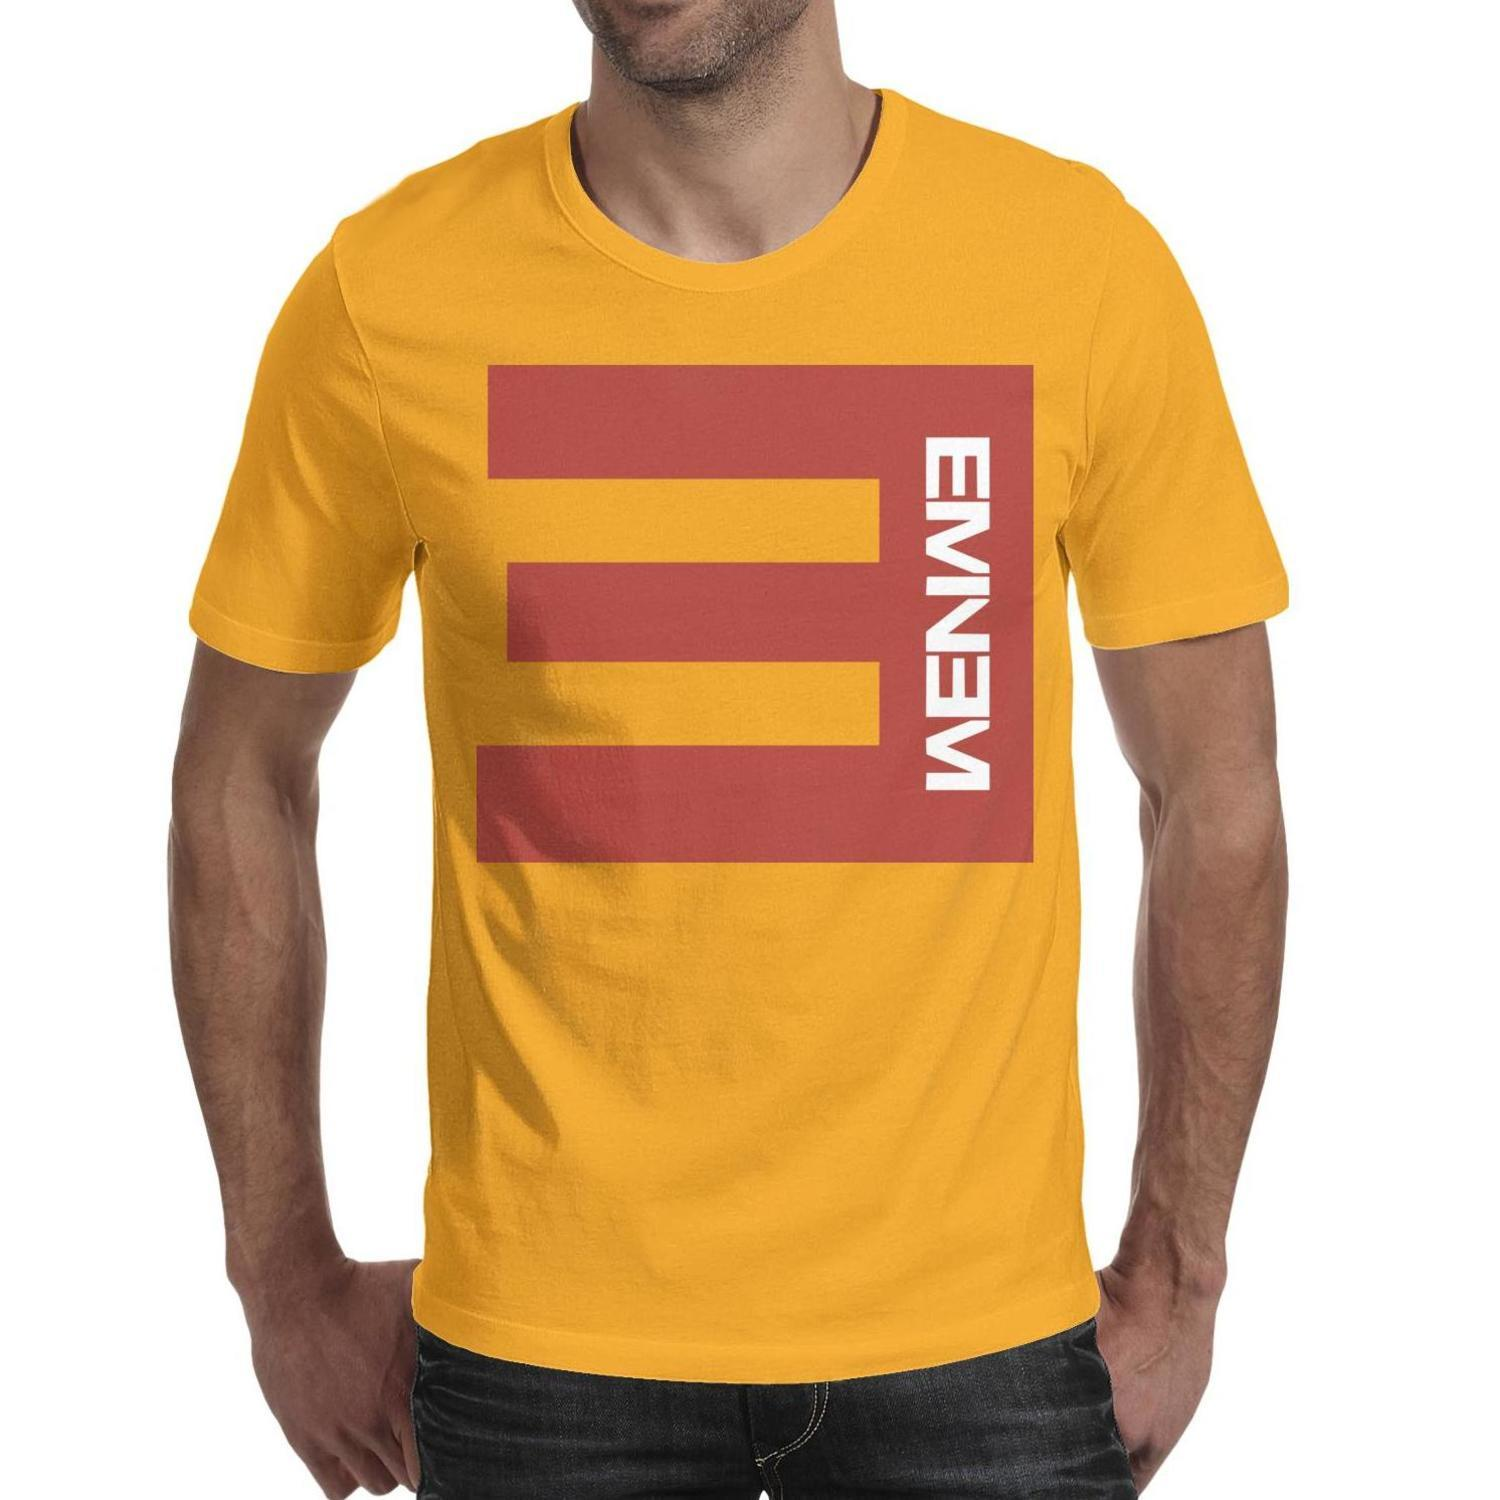 Eminem red logo men short sleeve shirts printing design t shirt 100%cotton fashion band crew neck Tops Pullover yellow